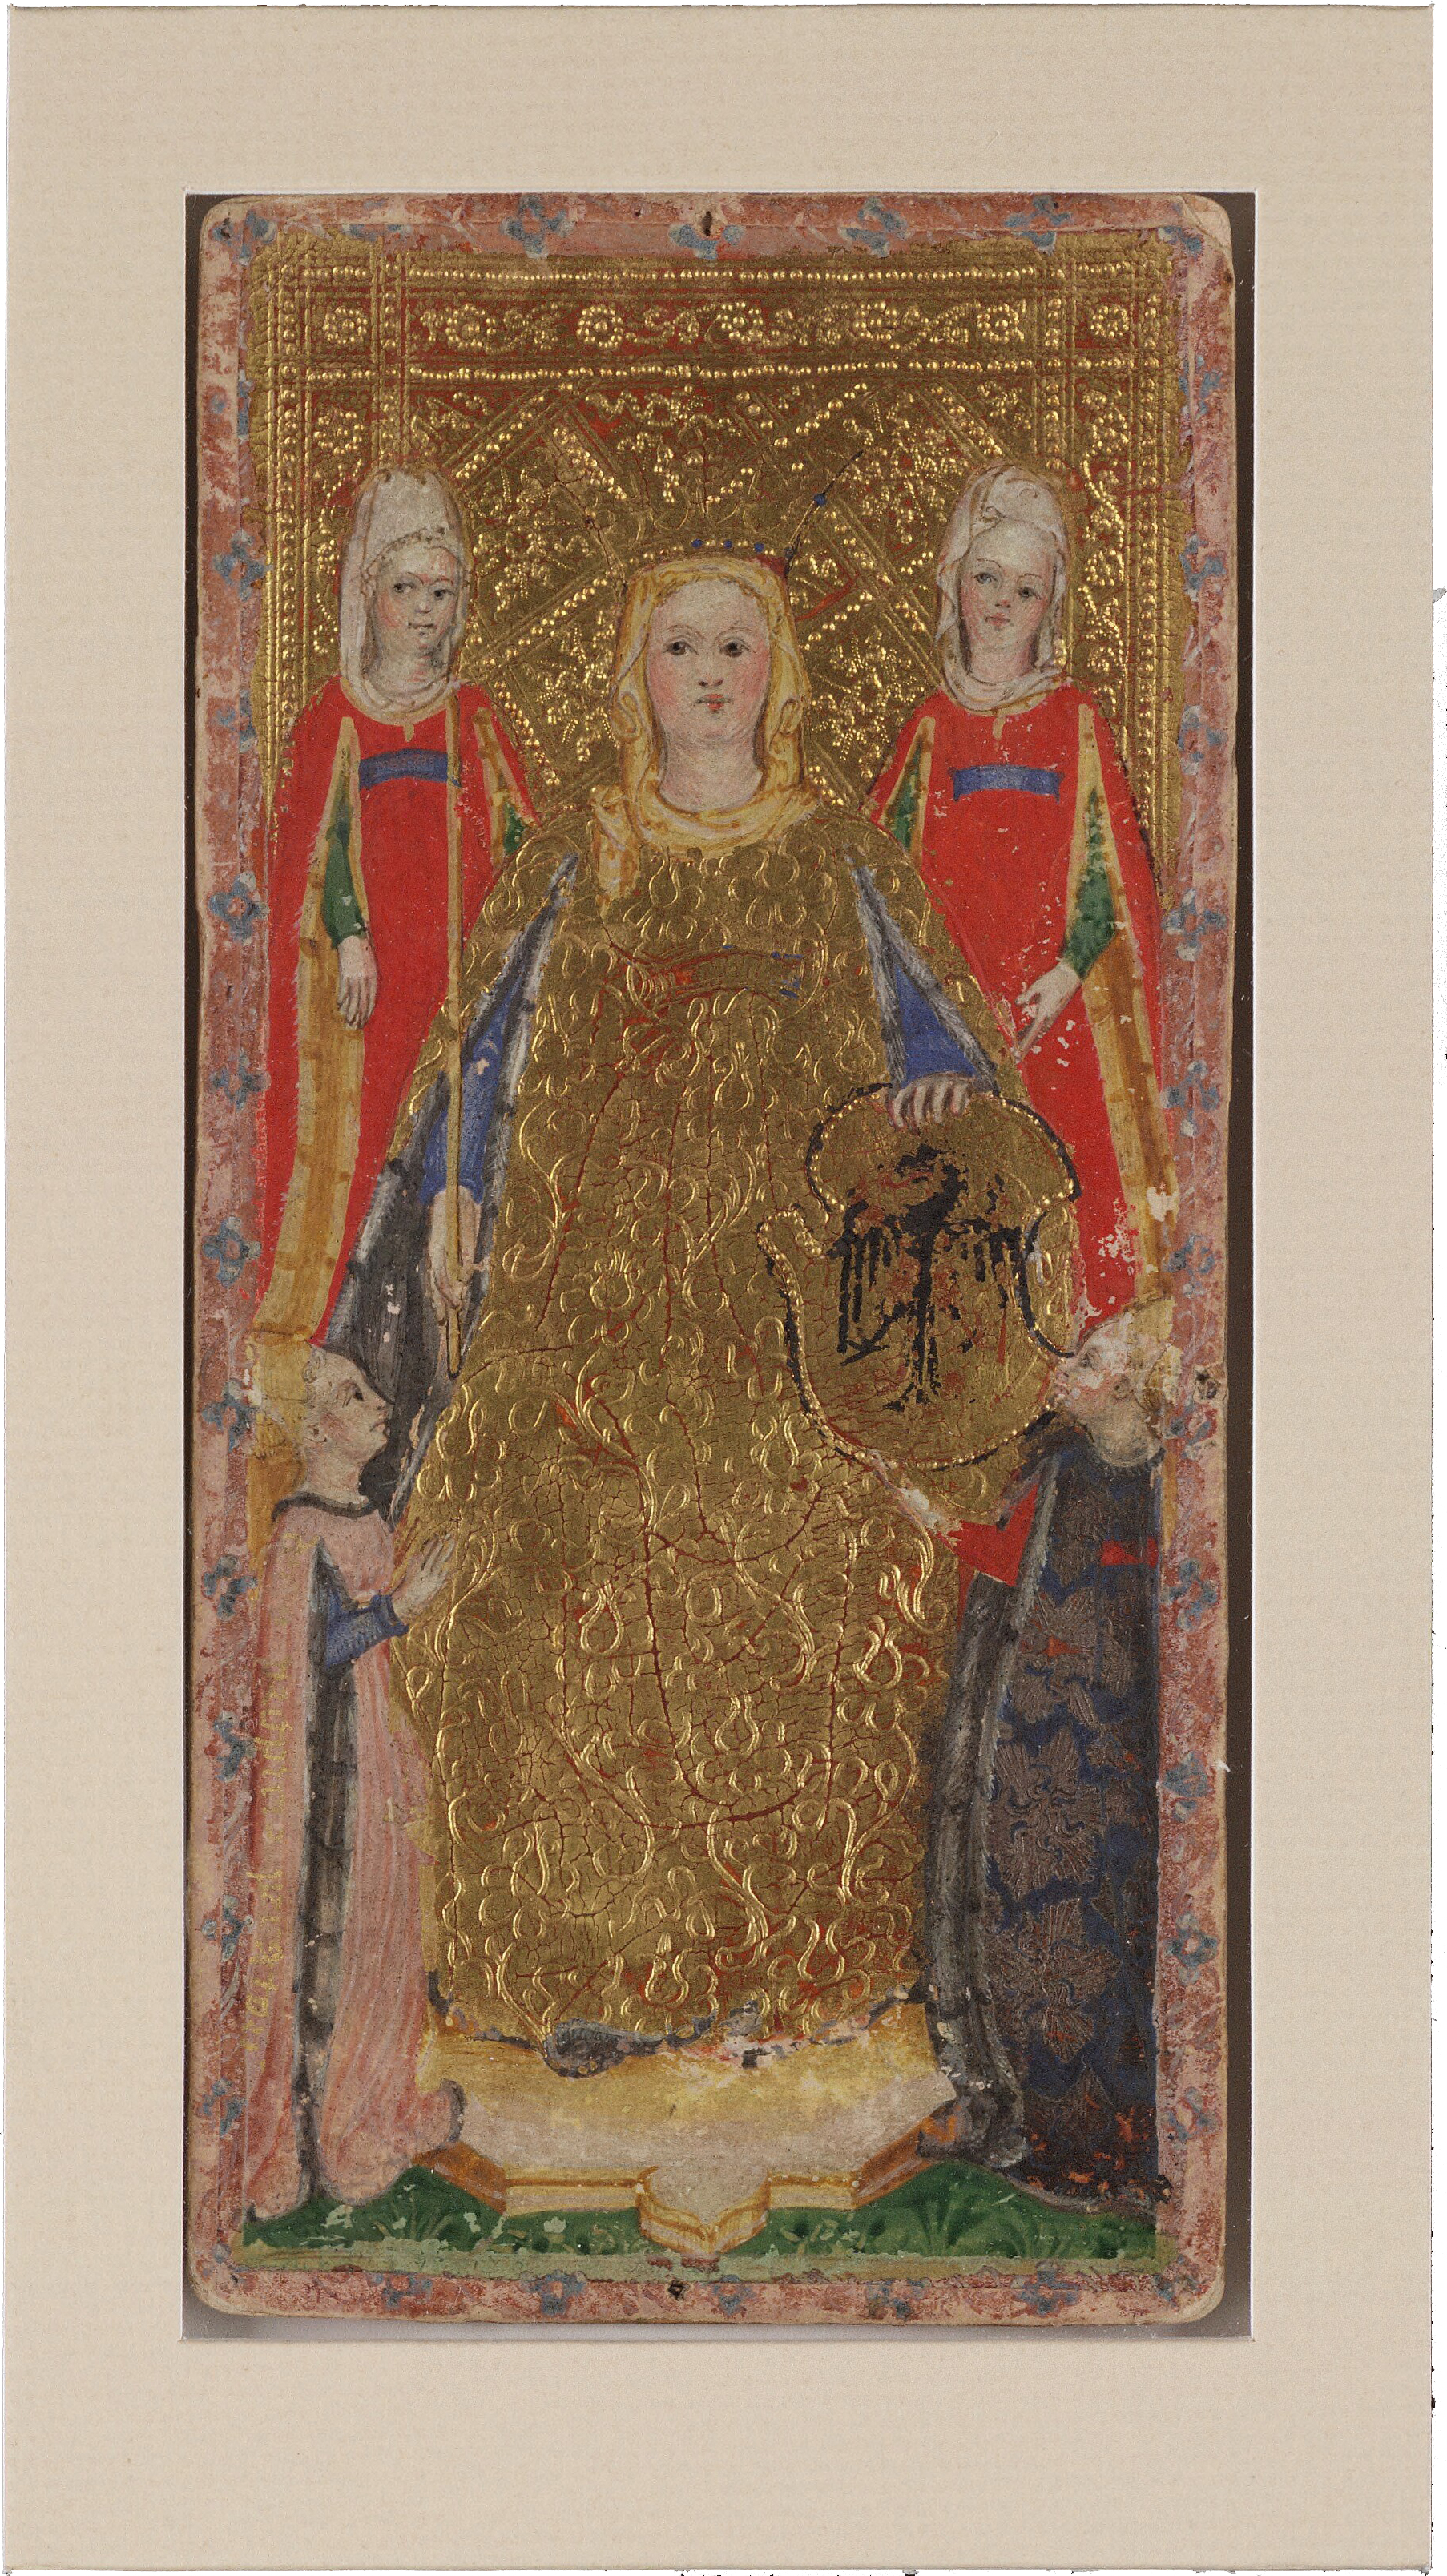 Empress from the Visconti Tarot , Bonifacio Bembo Beinecke Rare Book and Manuscript Library, c. 1426-1447